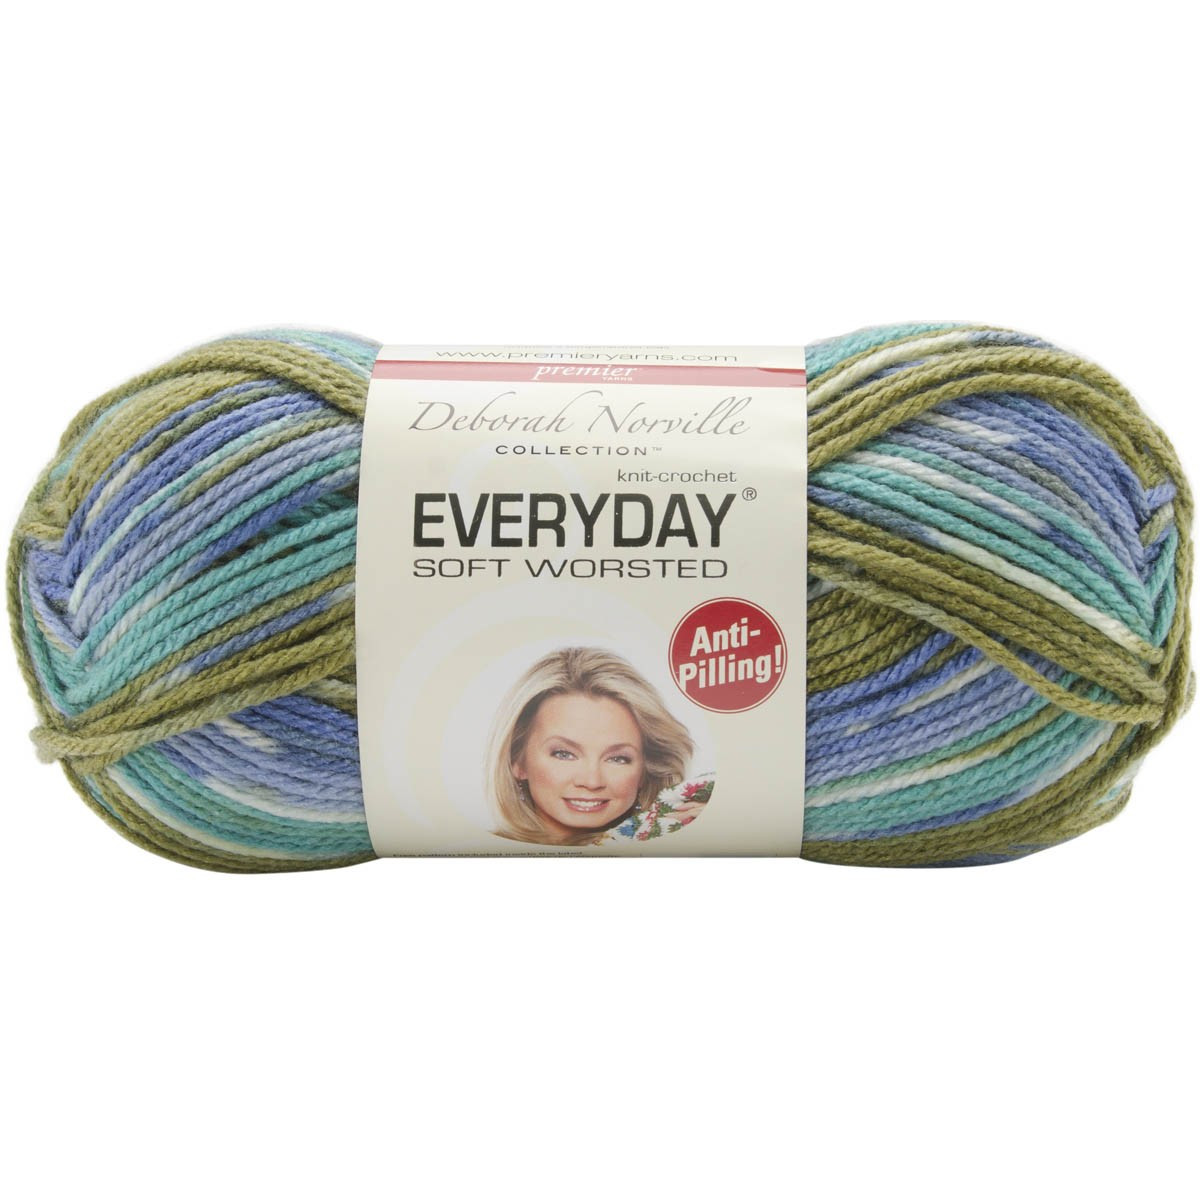 Deborah Norville Collection Everyday Solid Yarn Pack of 2